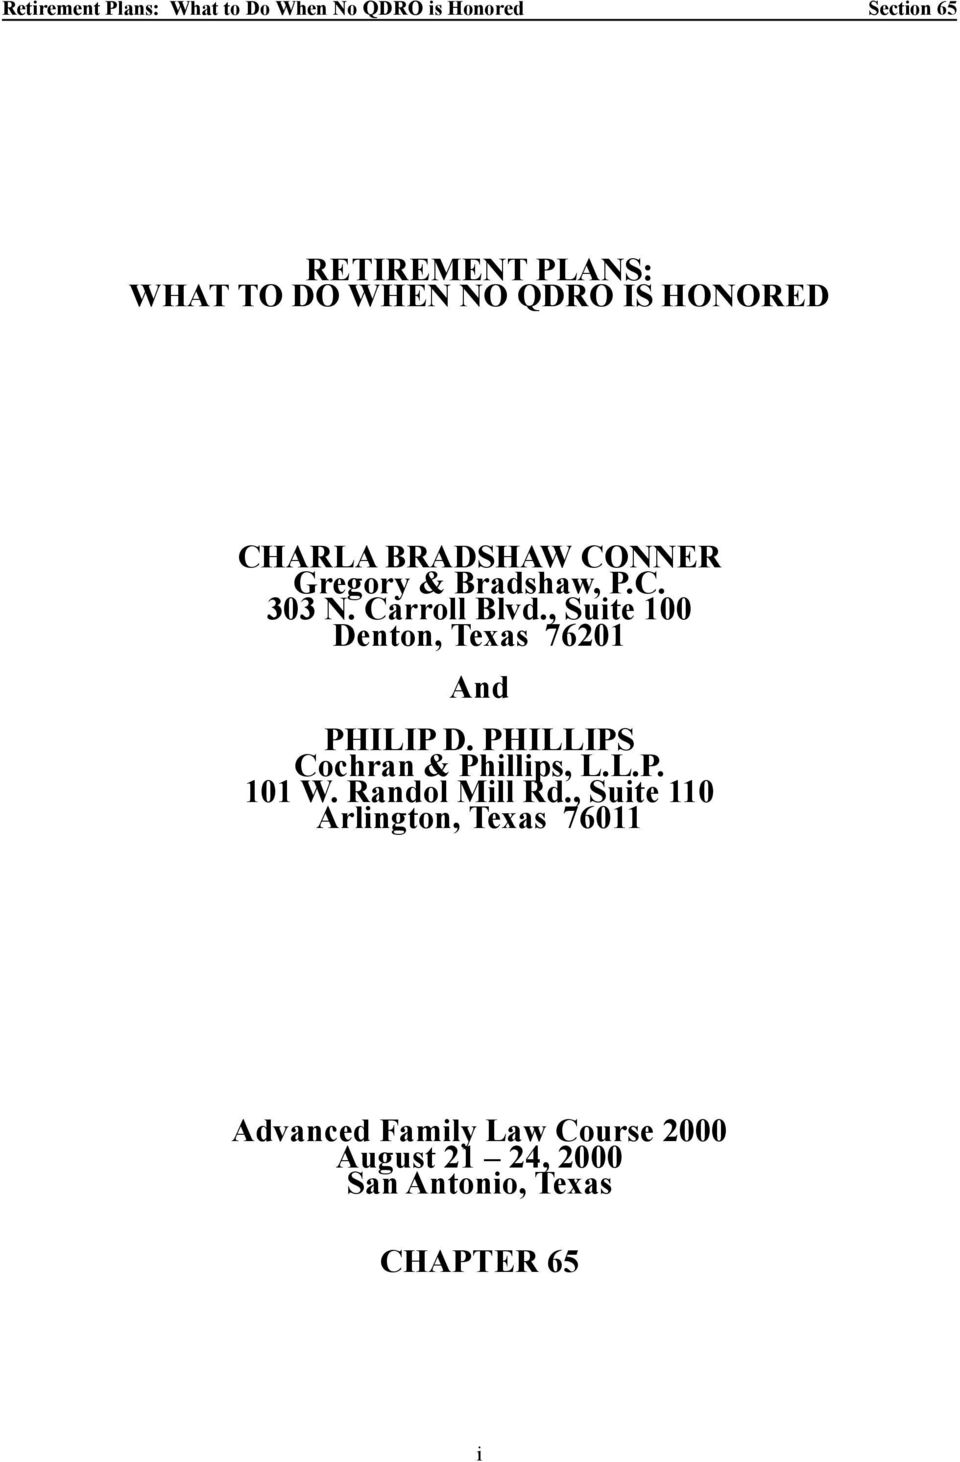 Retirement plans what to do when no qdro is honored pdf phillips cochran phillips llp 101 w randol mill solutioingenieria Image collections